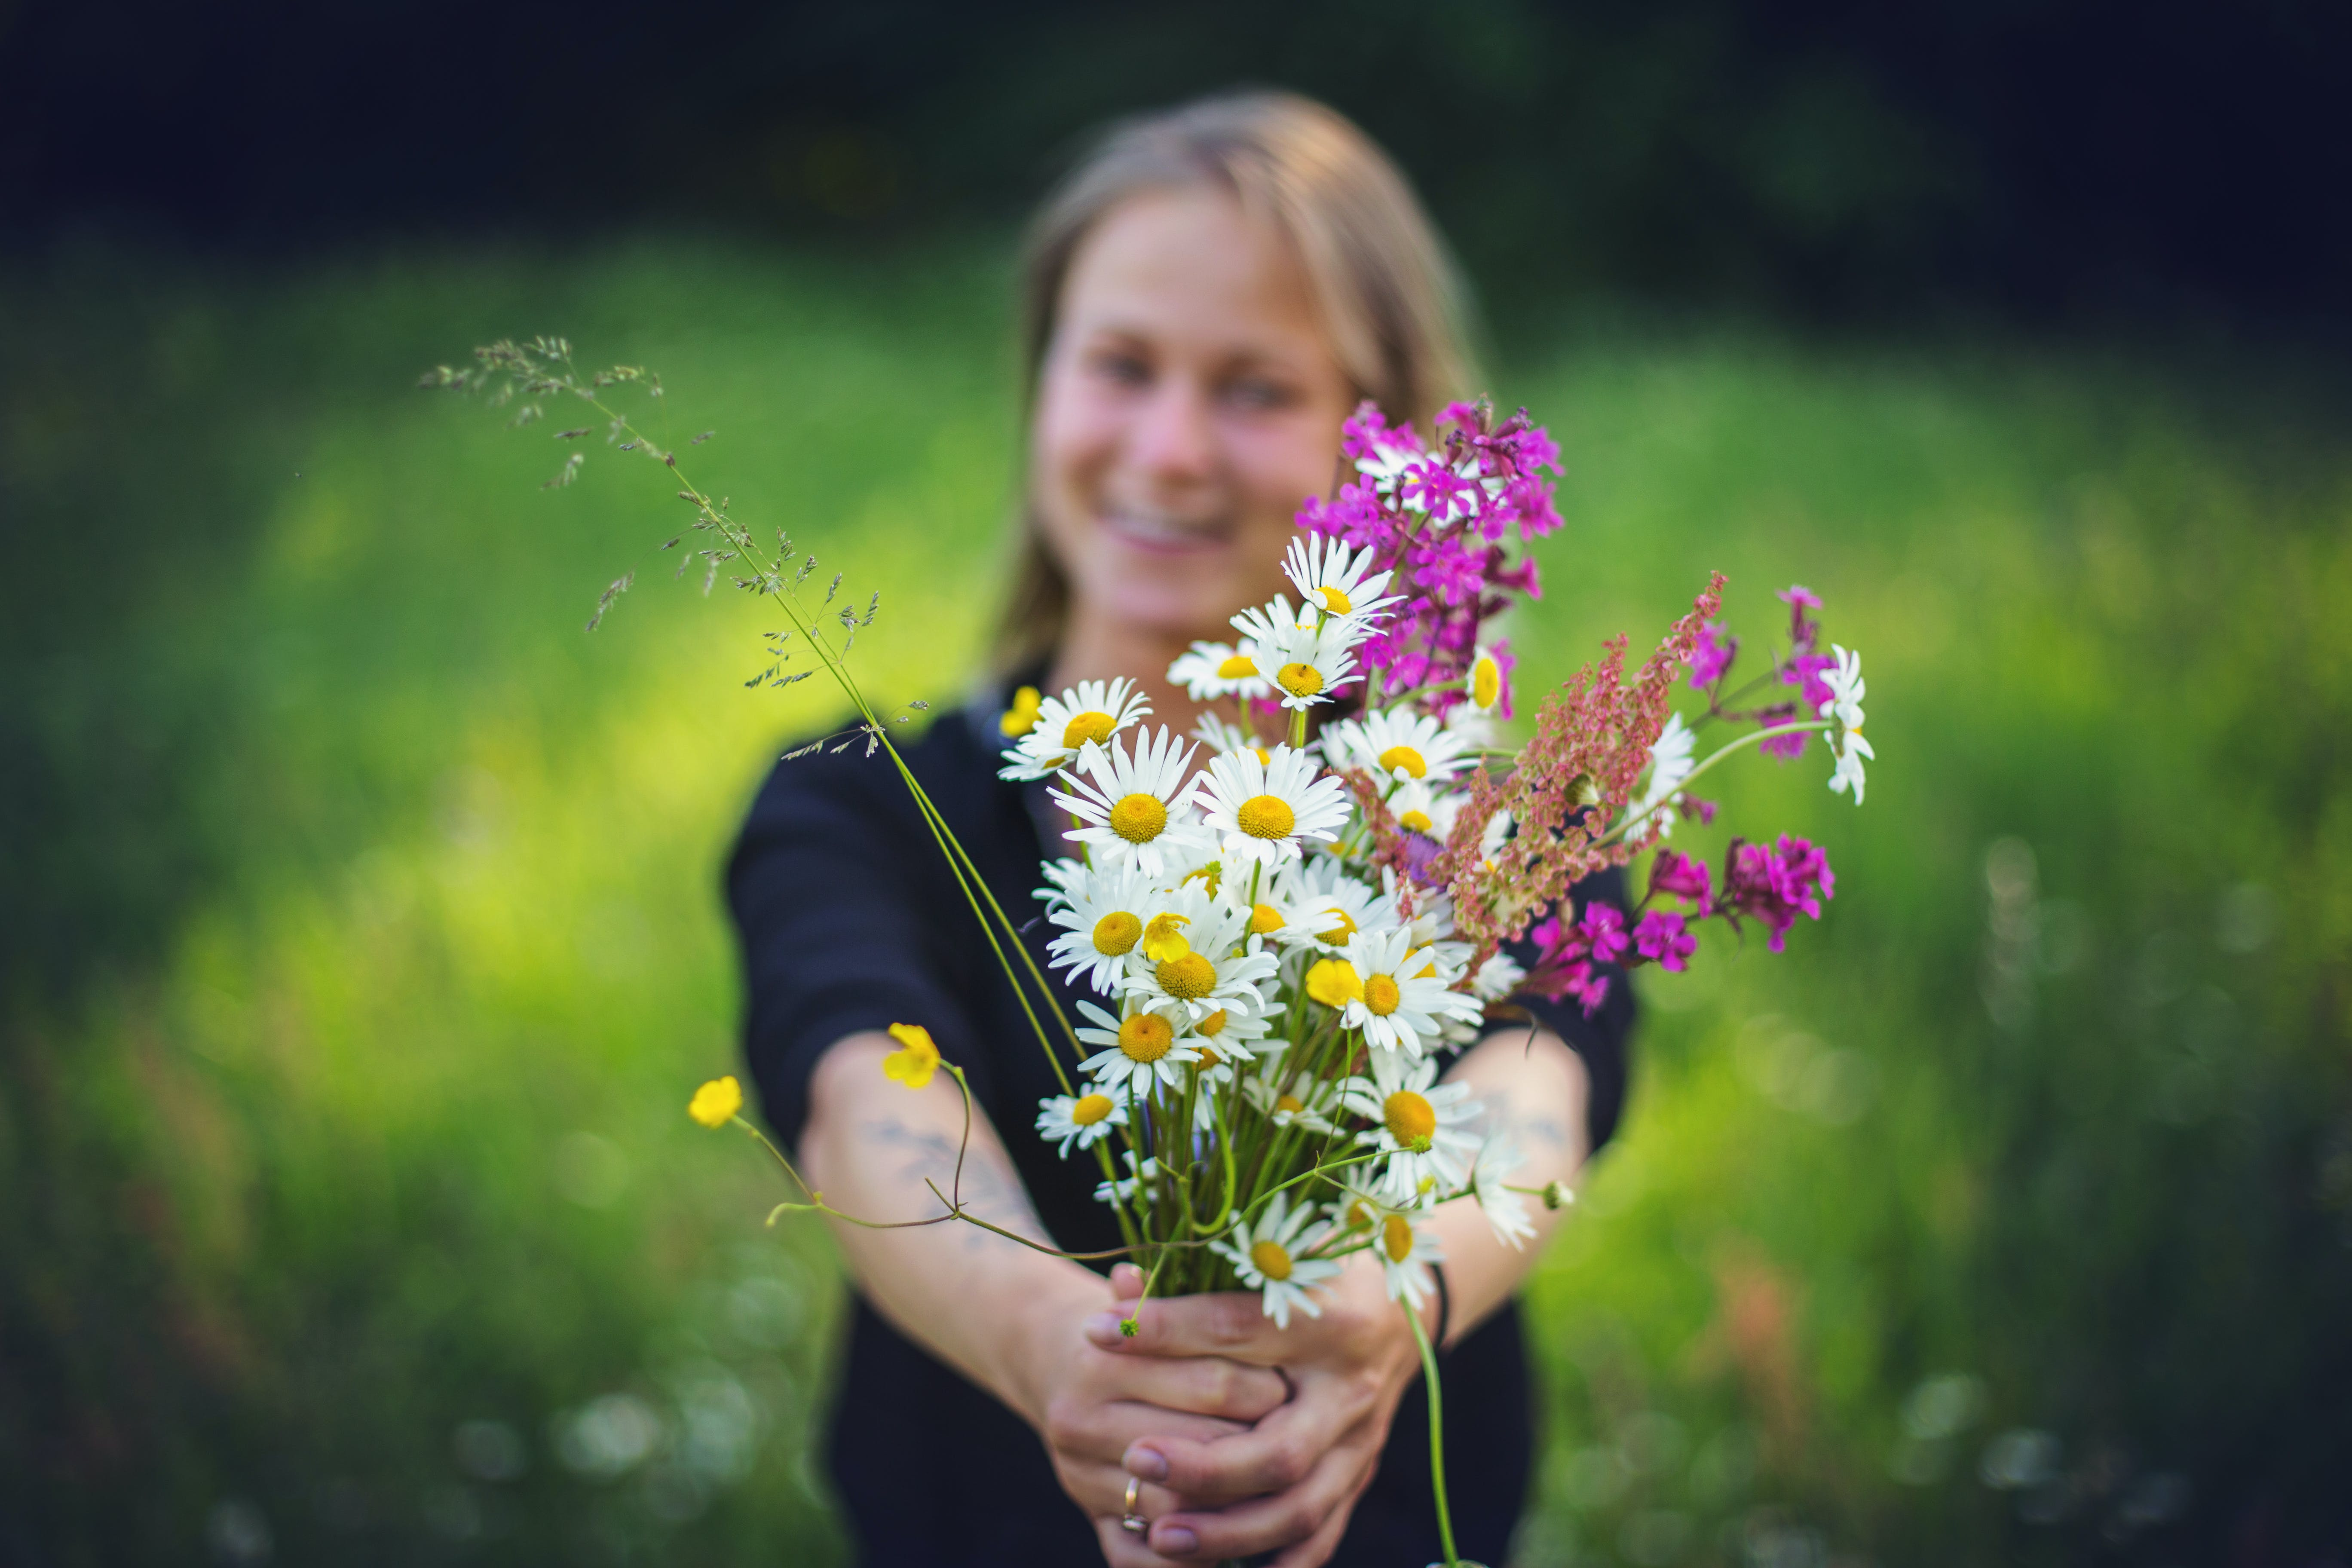 Photography of Woman Holding Flowers